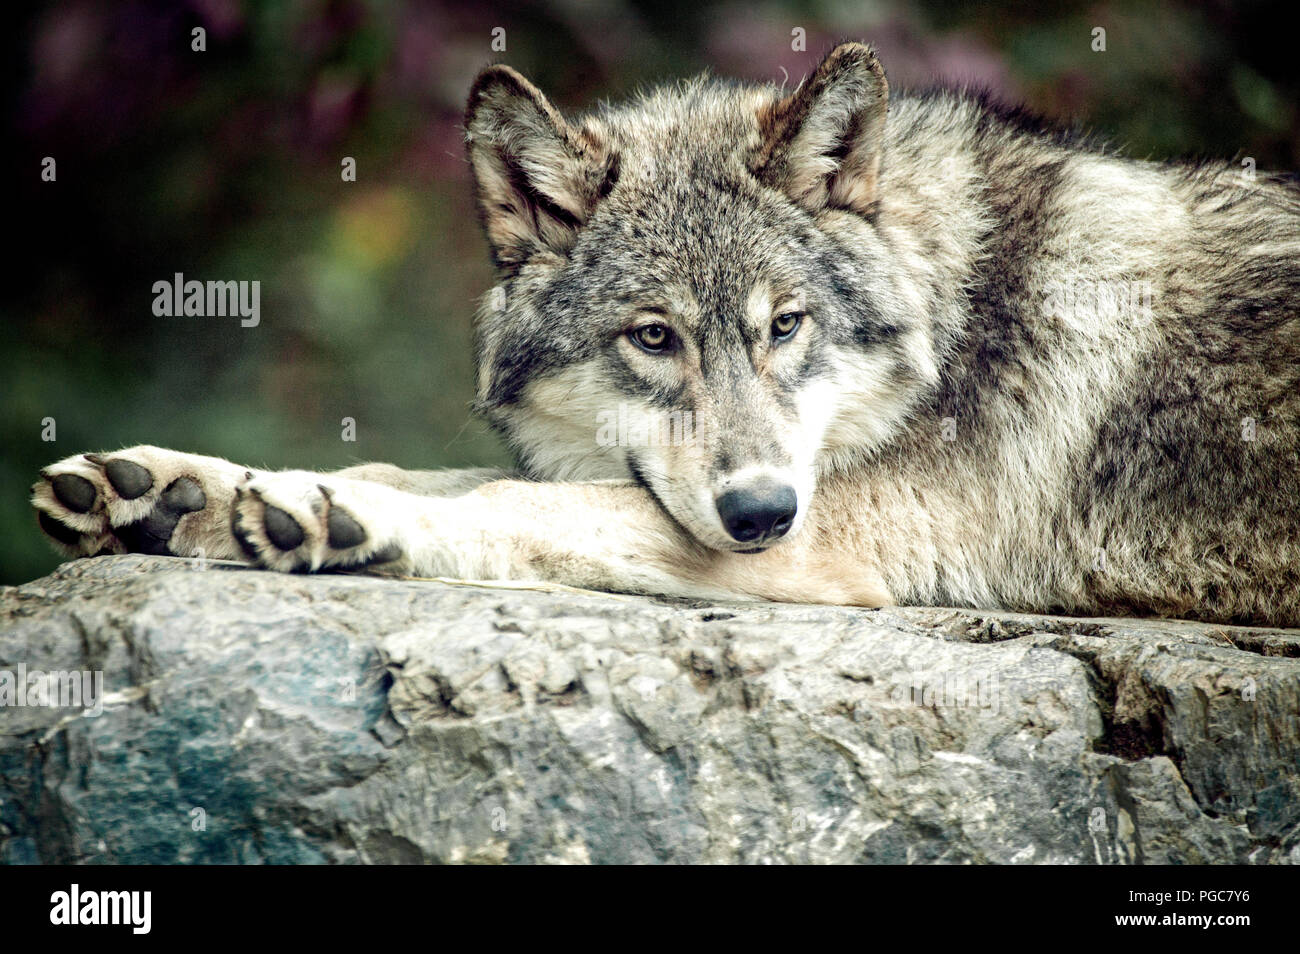 A Gray wolf of the Great Plains sub species at the International Wolf Center in Ely, Minnesota. - Stock Image